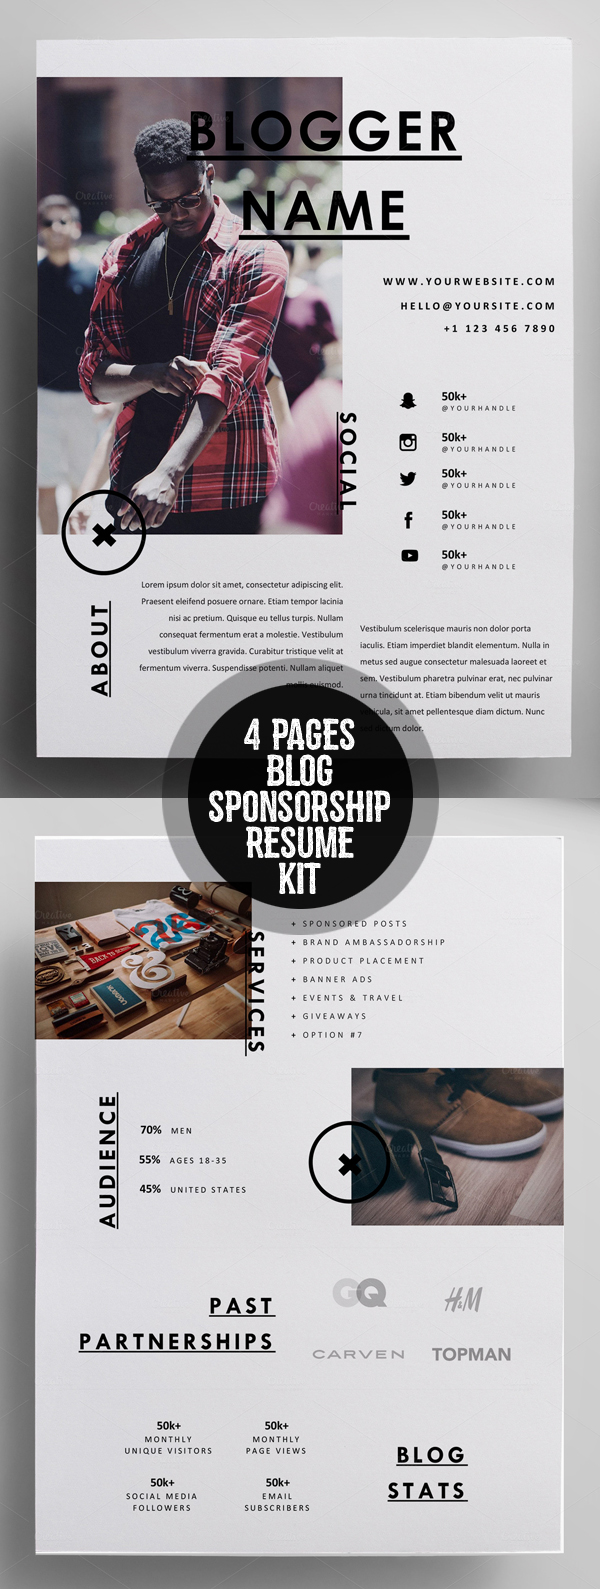 Creative 4 Pages Blog Sponsorship Kit Resume Template